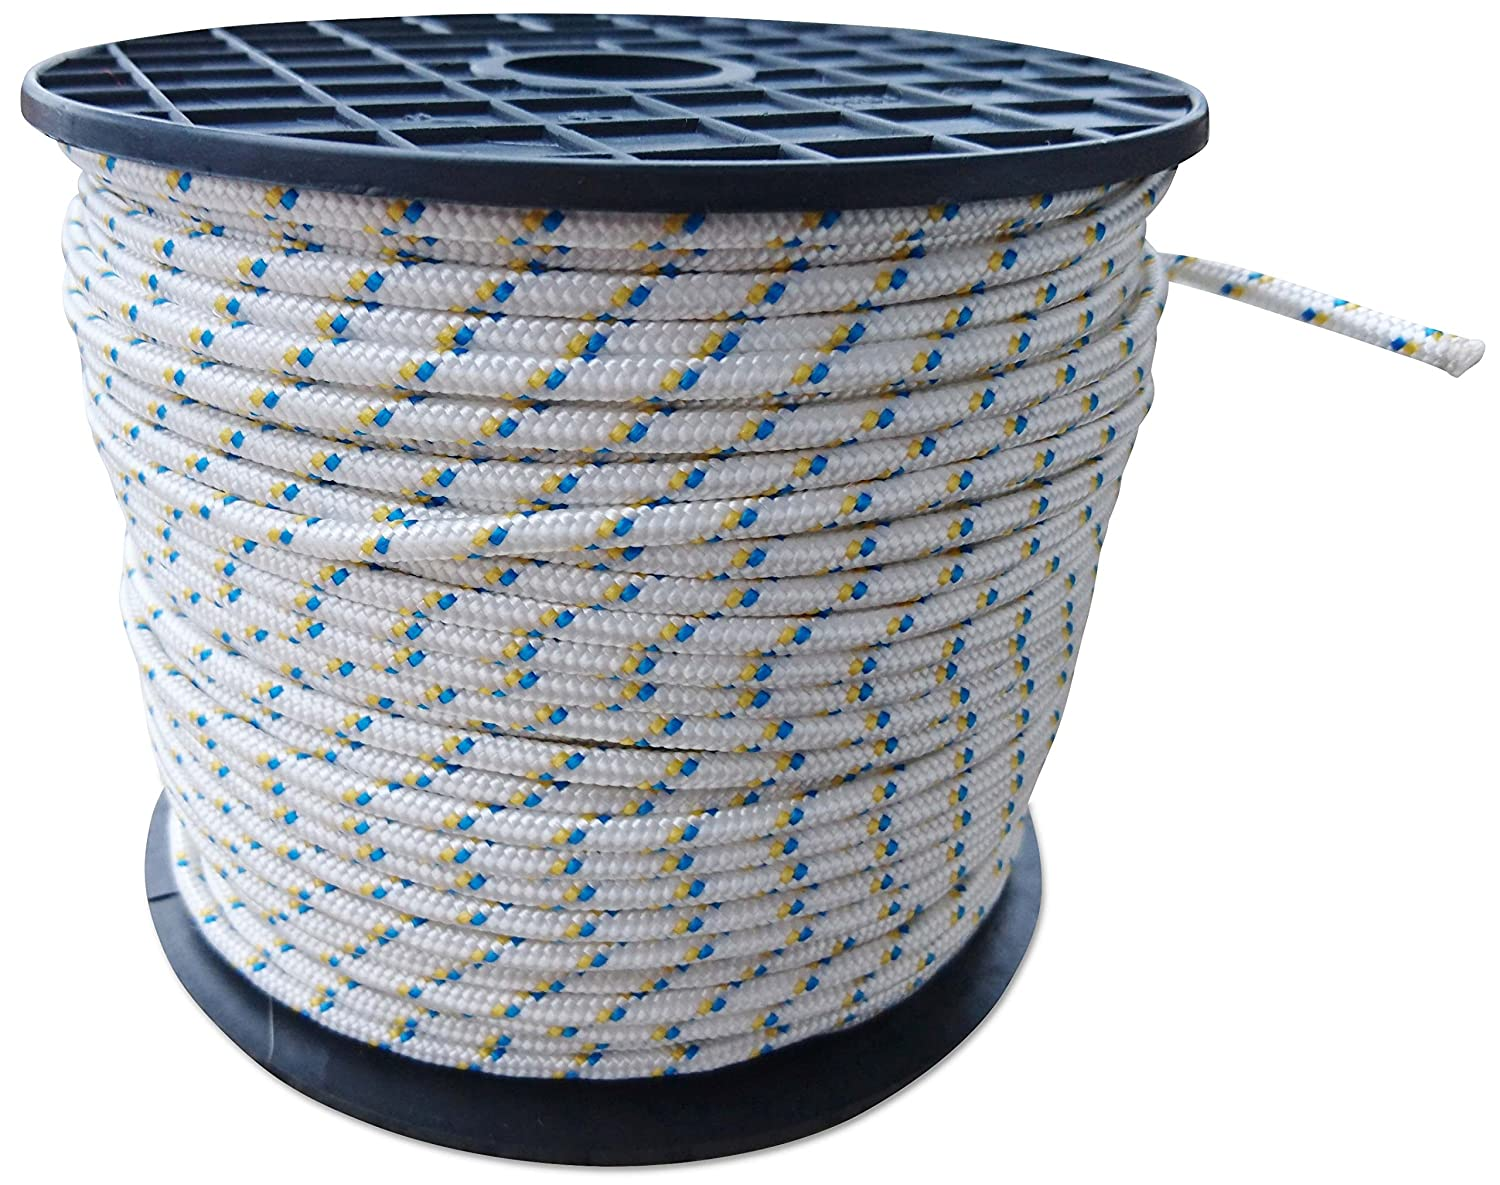 MR Pipe 3.5mm Hedge trimmer pull cord start rope 2M 6FT